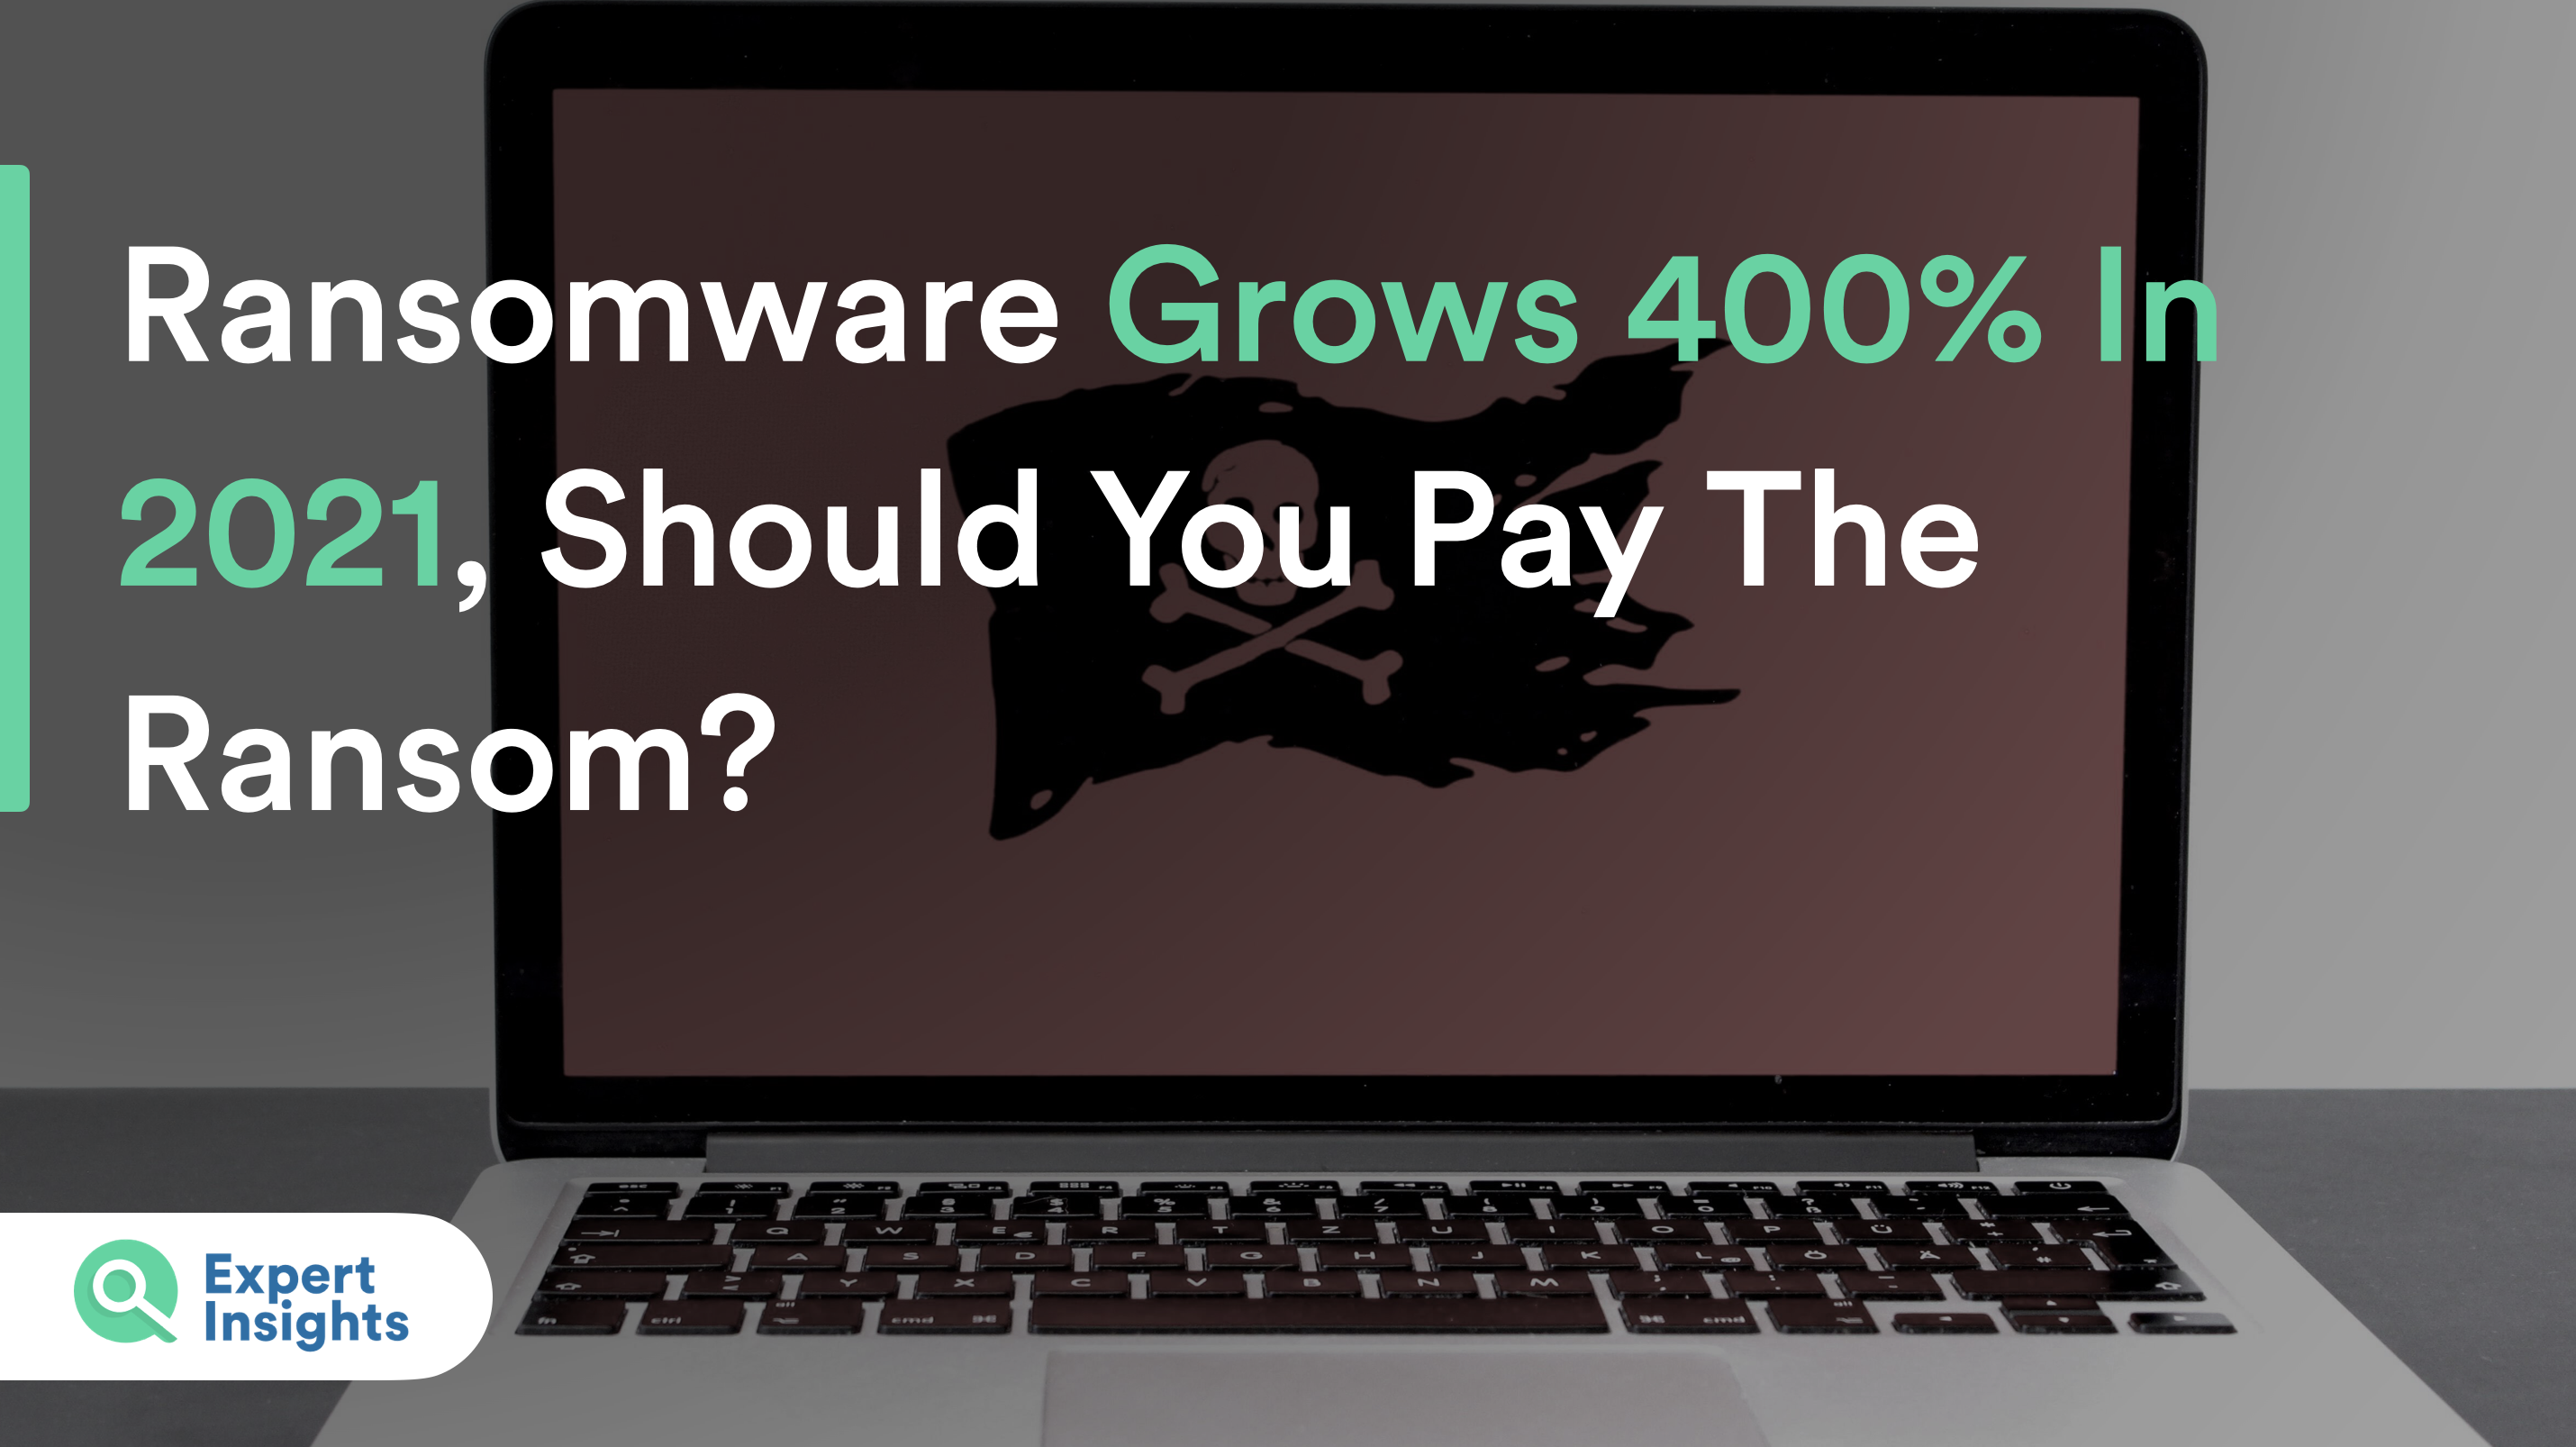 Ransomware Grows 400% In 2021, Should You Pay The Ransom?